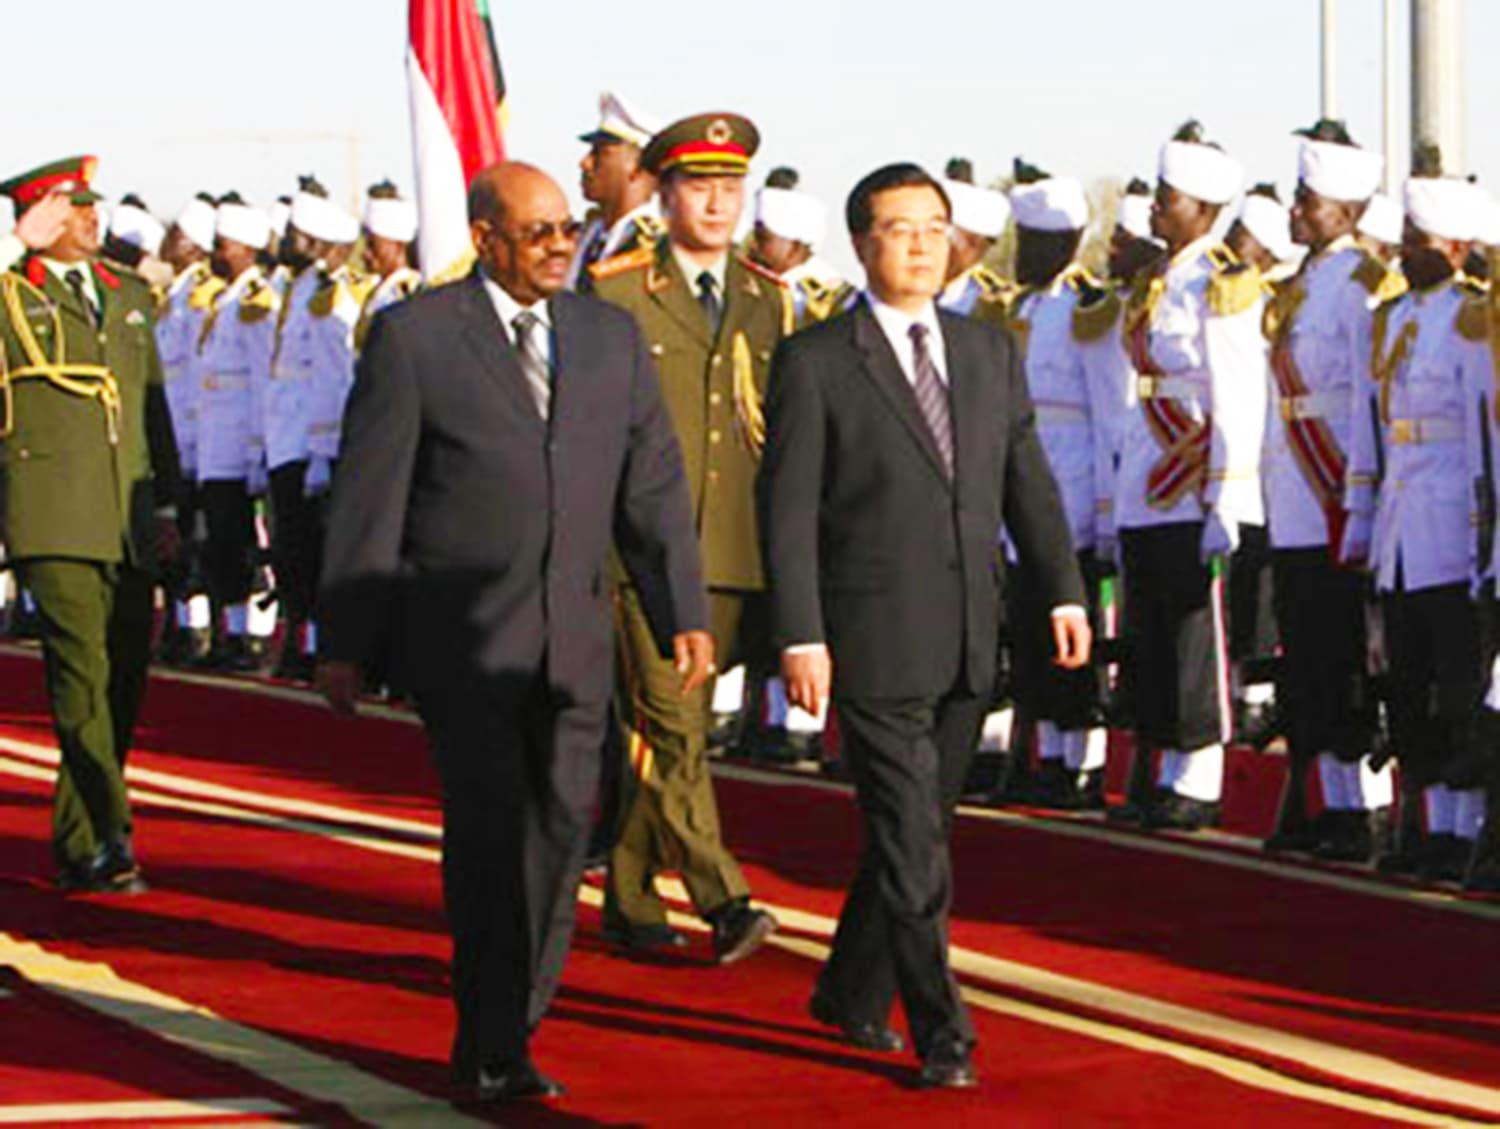 Chinese President on a visit to Sudan. China has become Sudan's main foreign investor and trading partner. — Photo: China Daily.